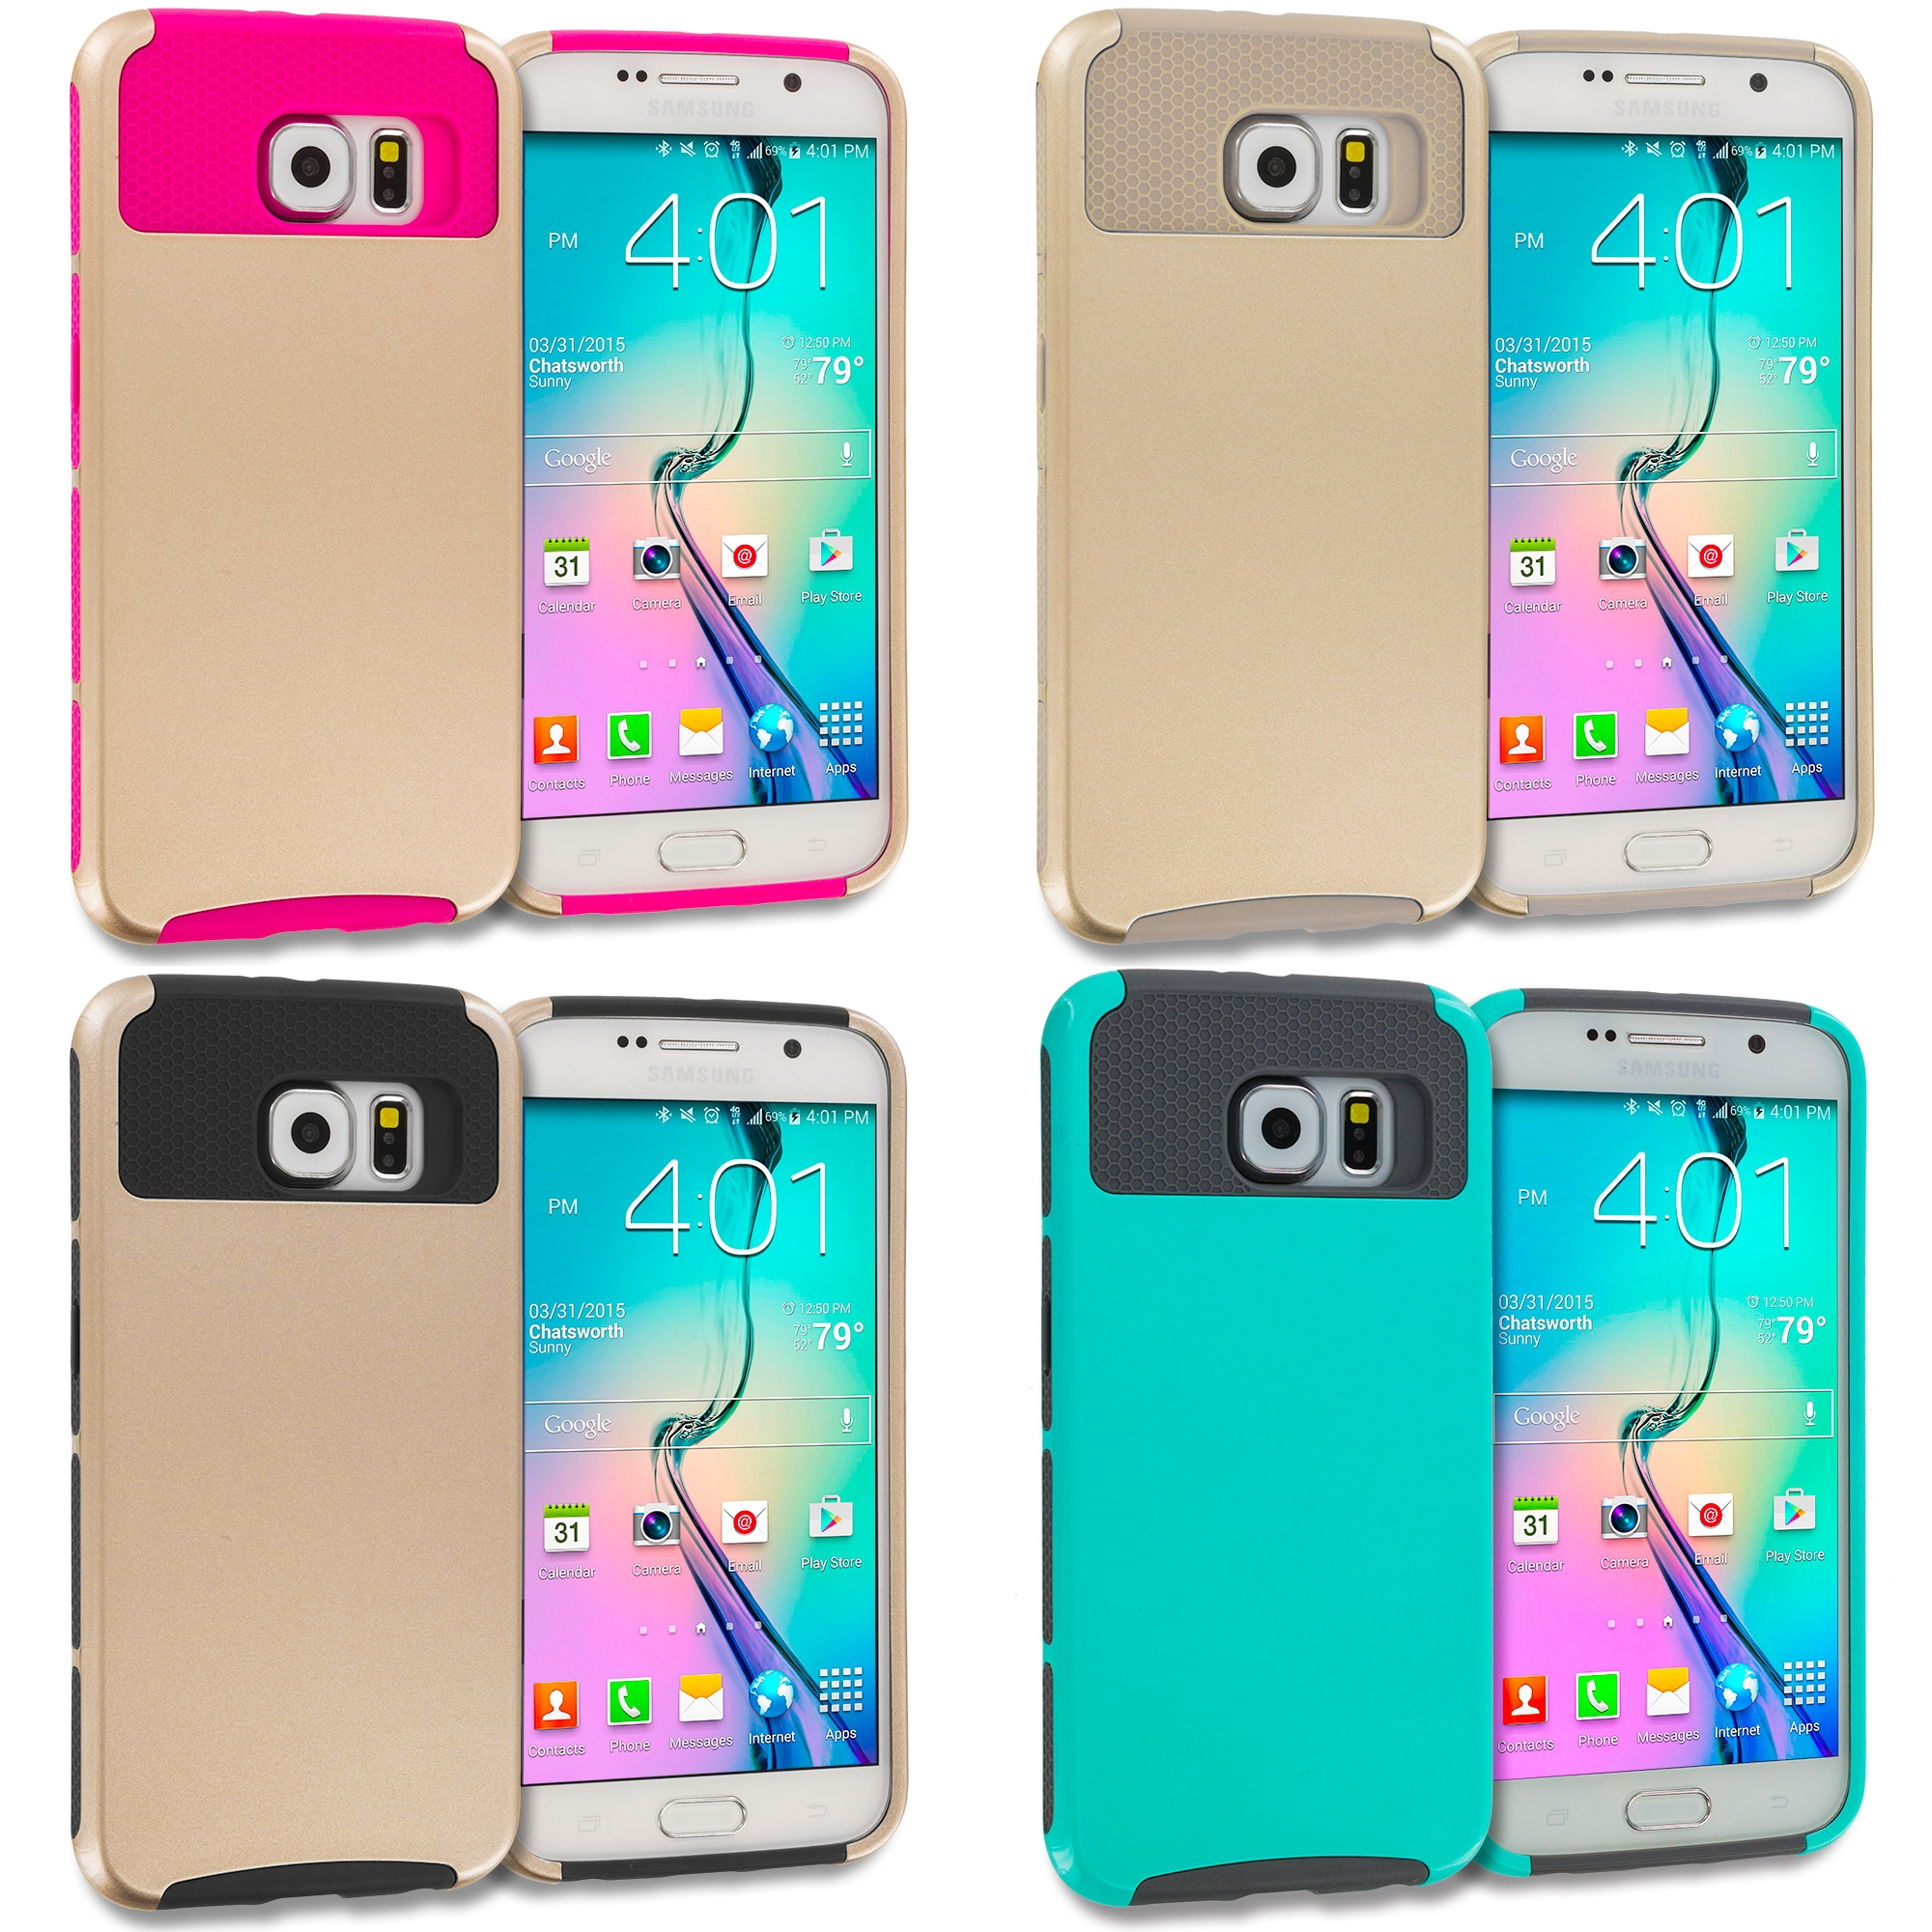 Samsung Galaxy S6 Edge 4 in 1 Combo Bundle Pack - Hybrid Hard TPU Honeycomb Rugged Case Cover